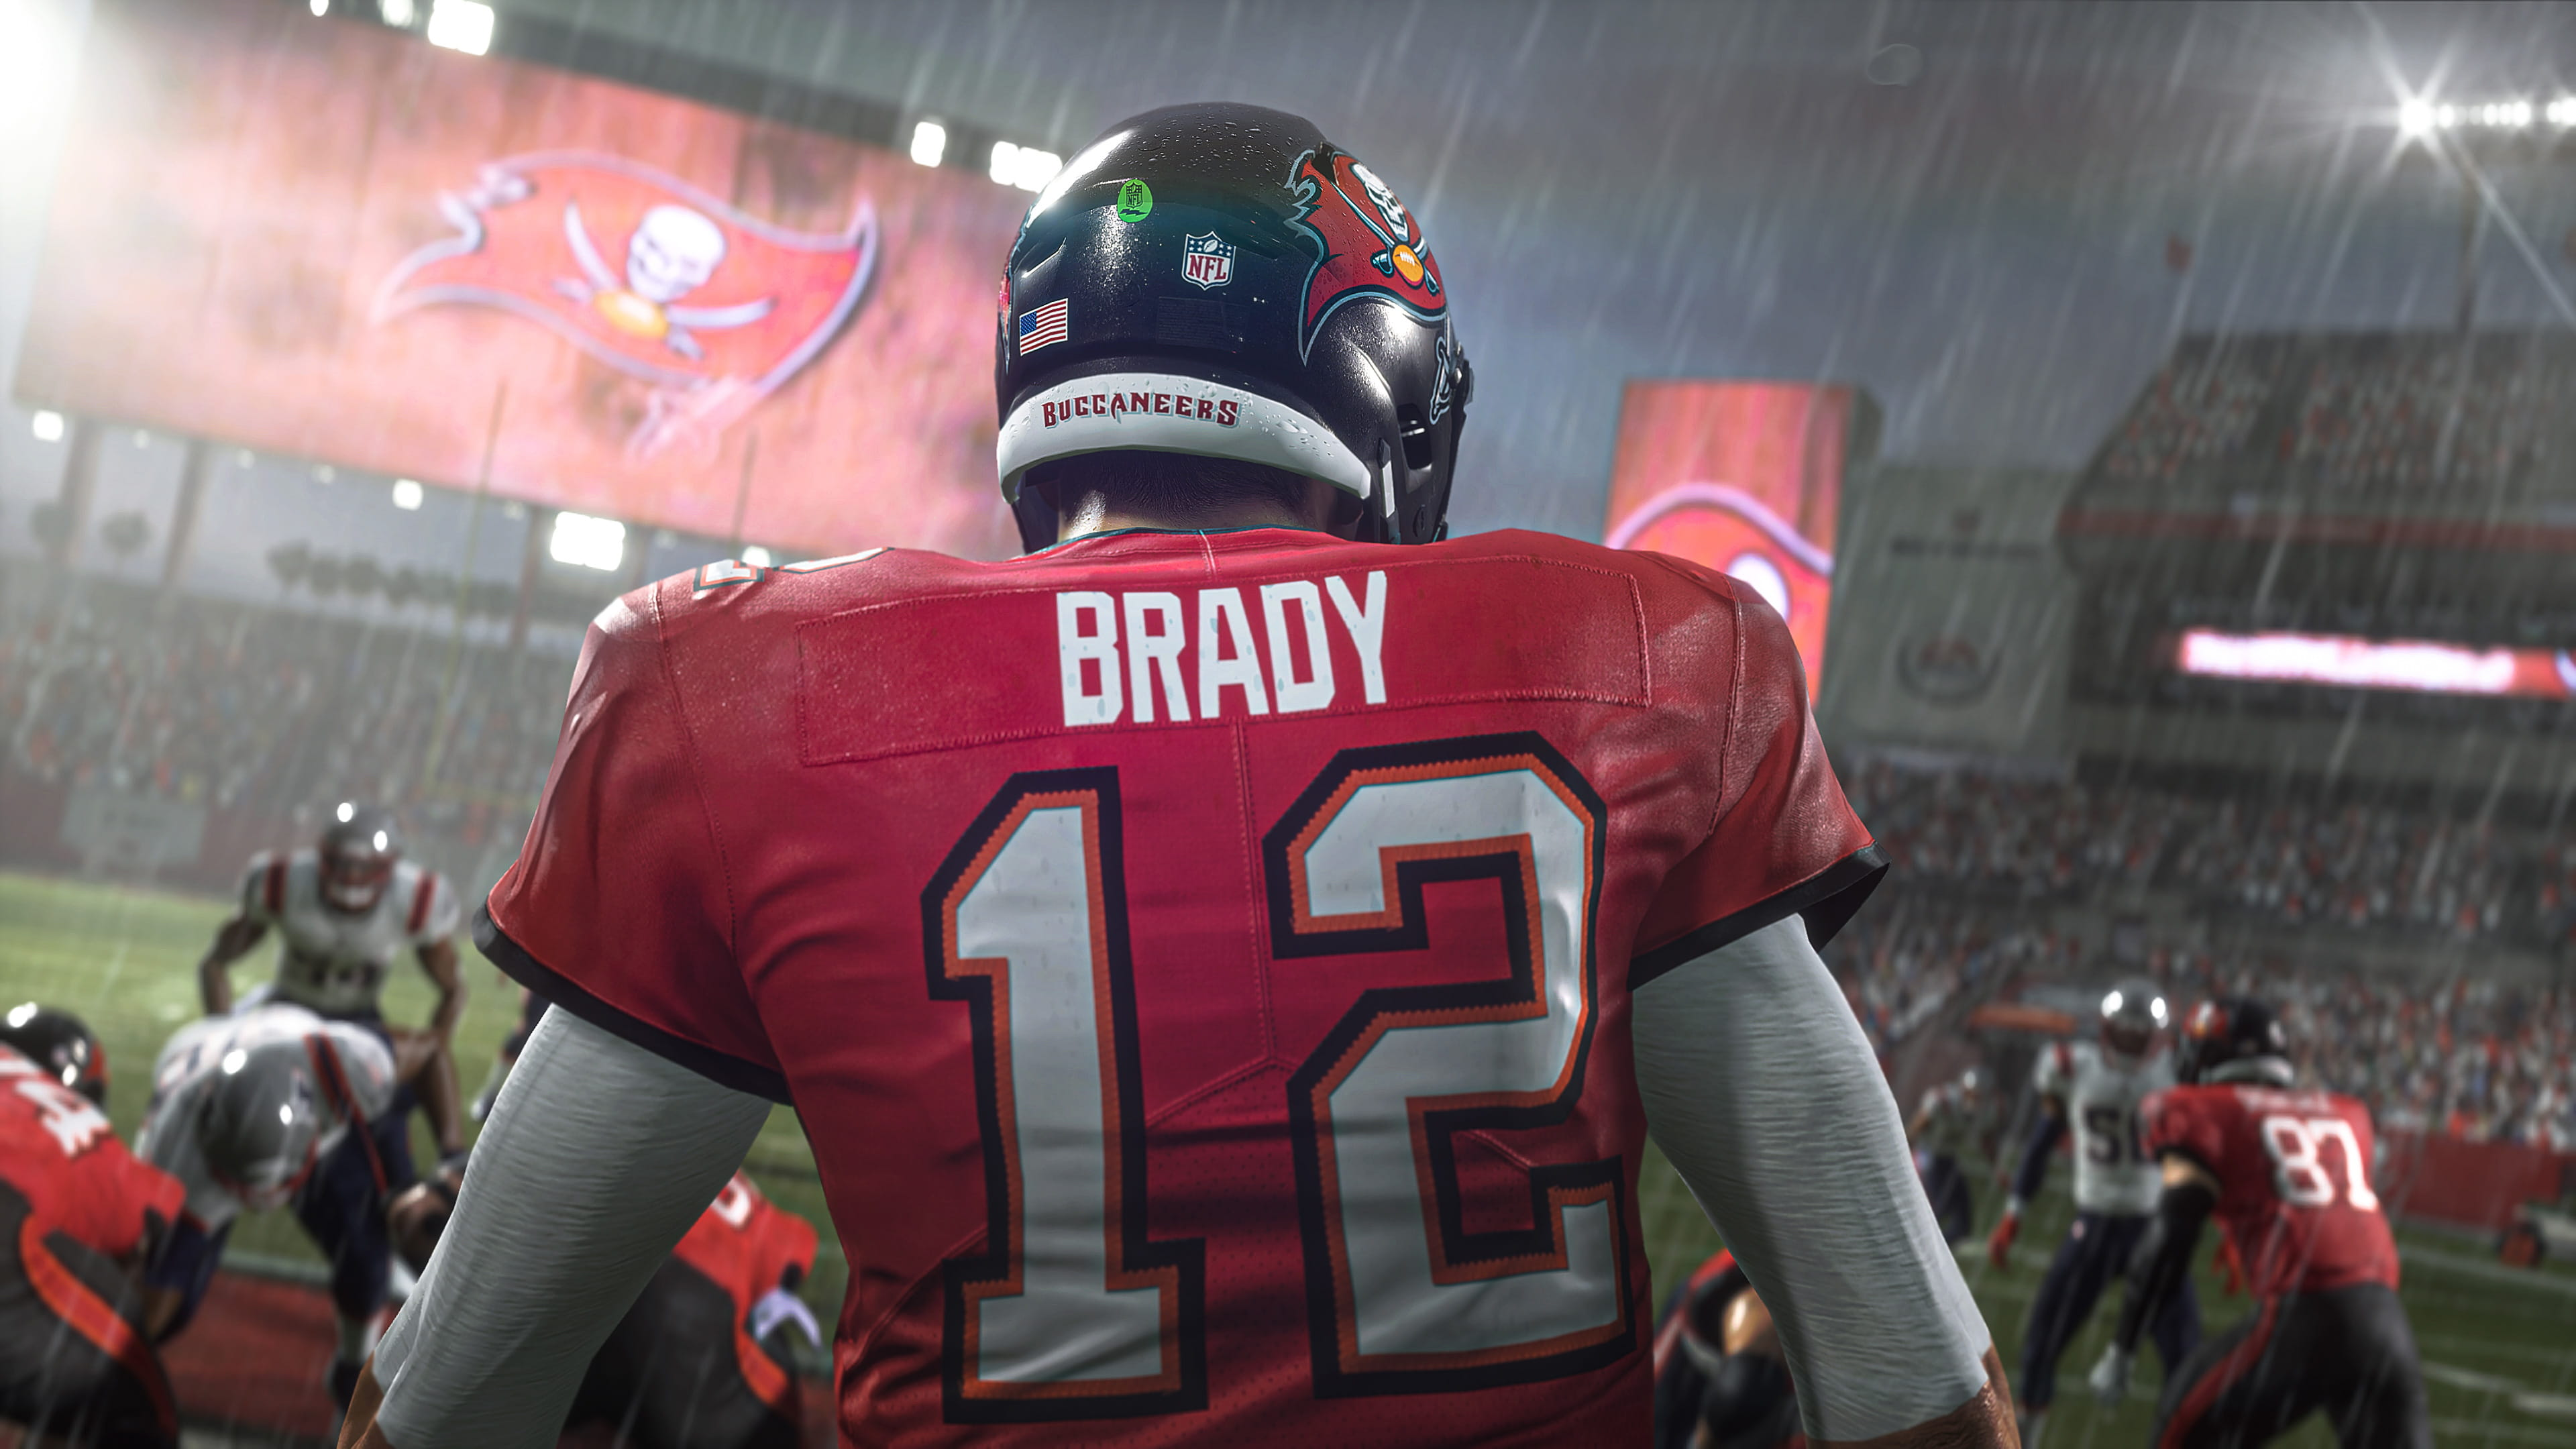 a close-up from behind Tampa Bay Buccaneers quarterback Tom Brady at the line of scrimmage in Madden NFL 21